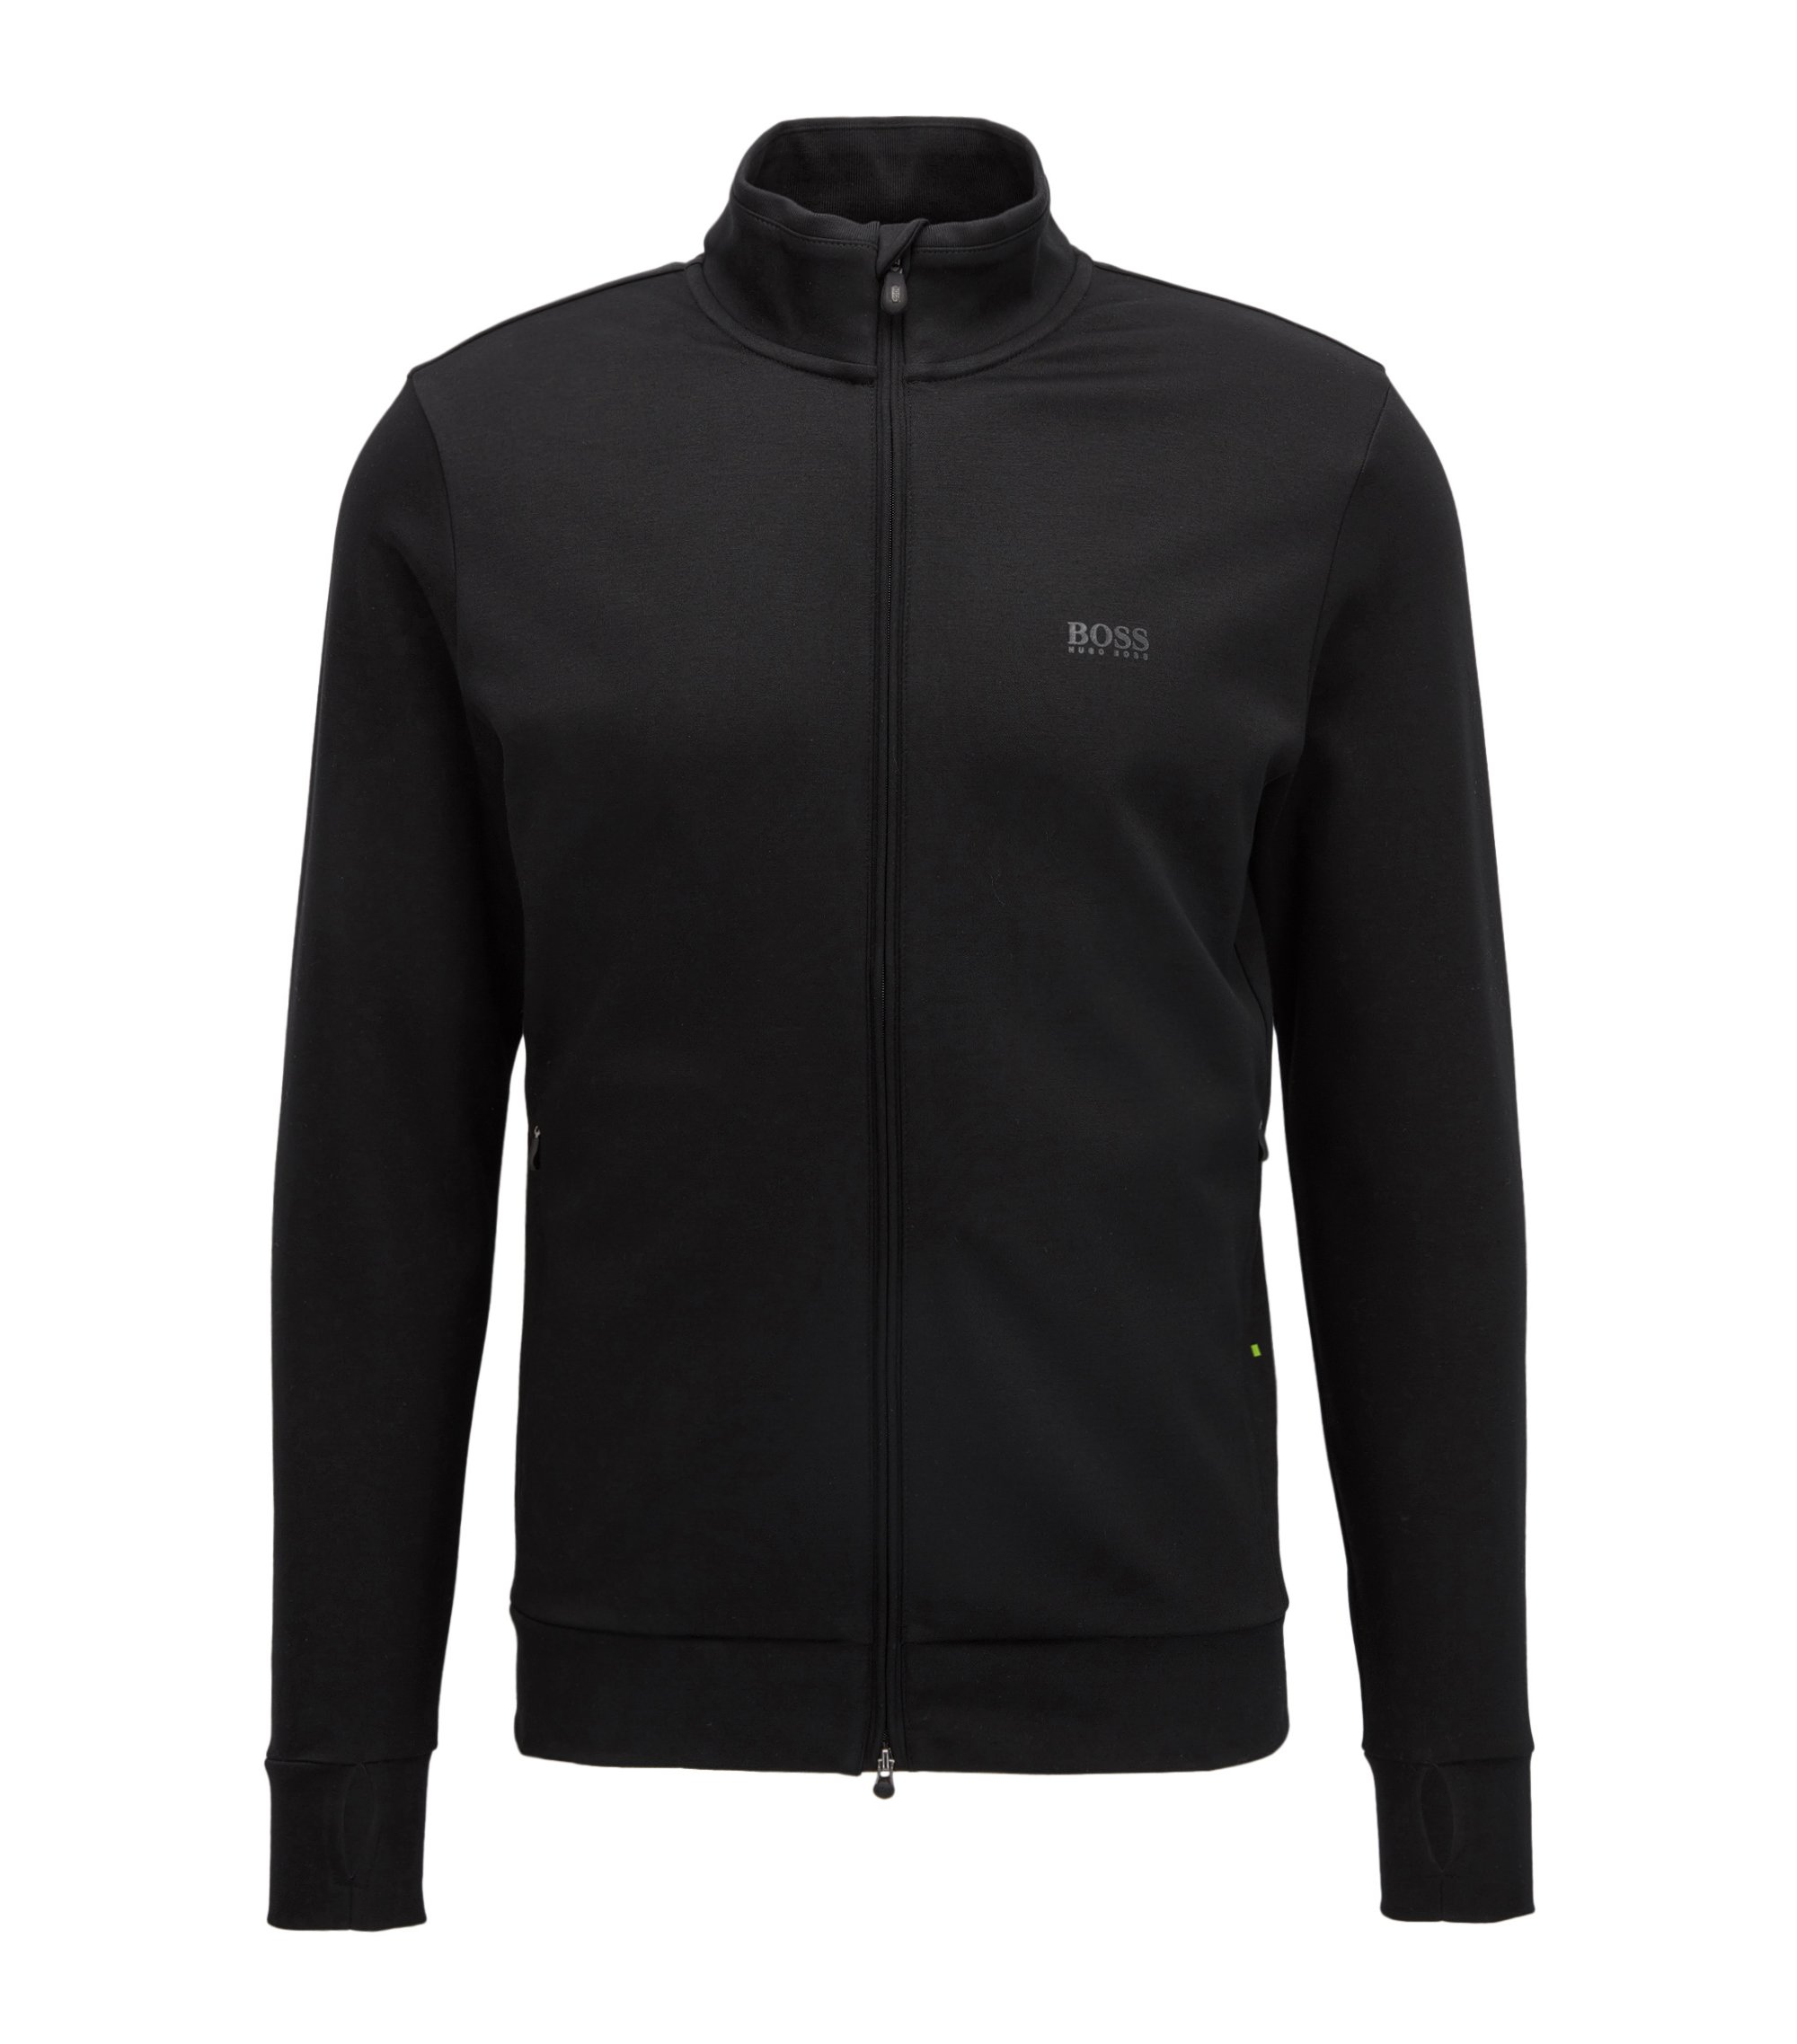 Storm-proof zip-through cotton-blend jacket in a slim fit, Black